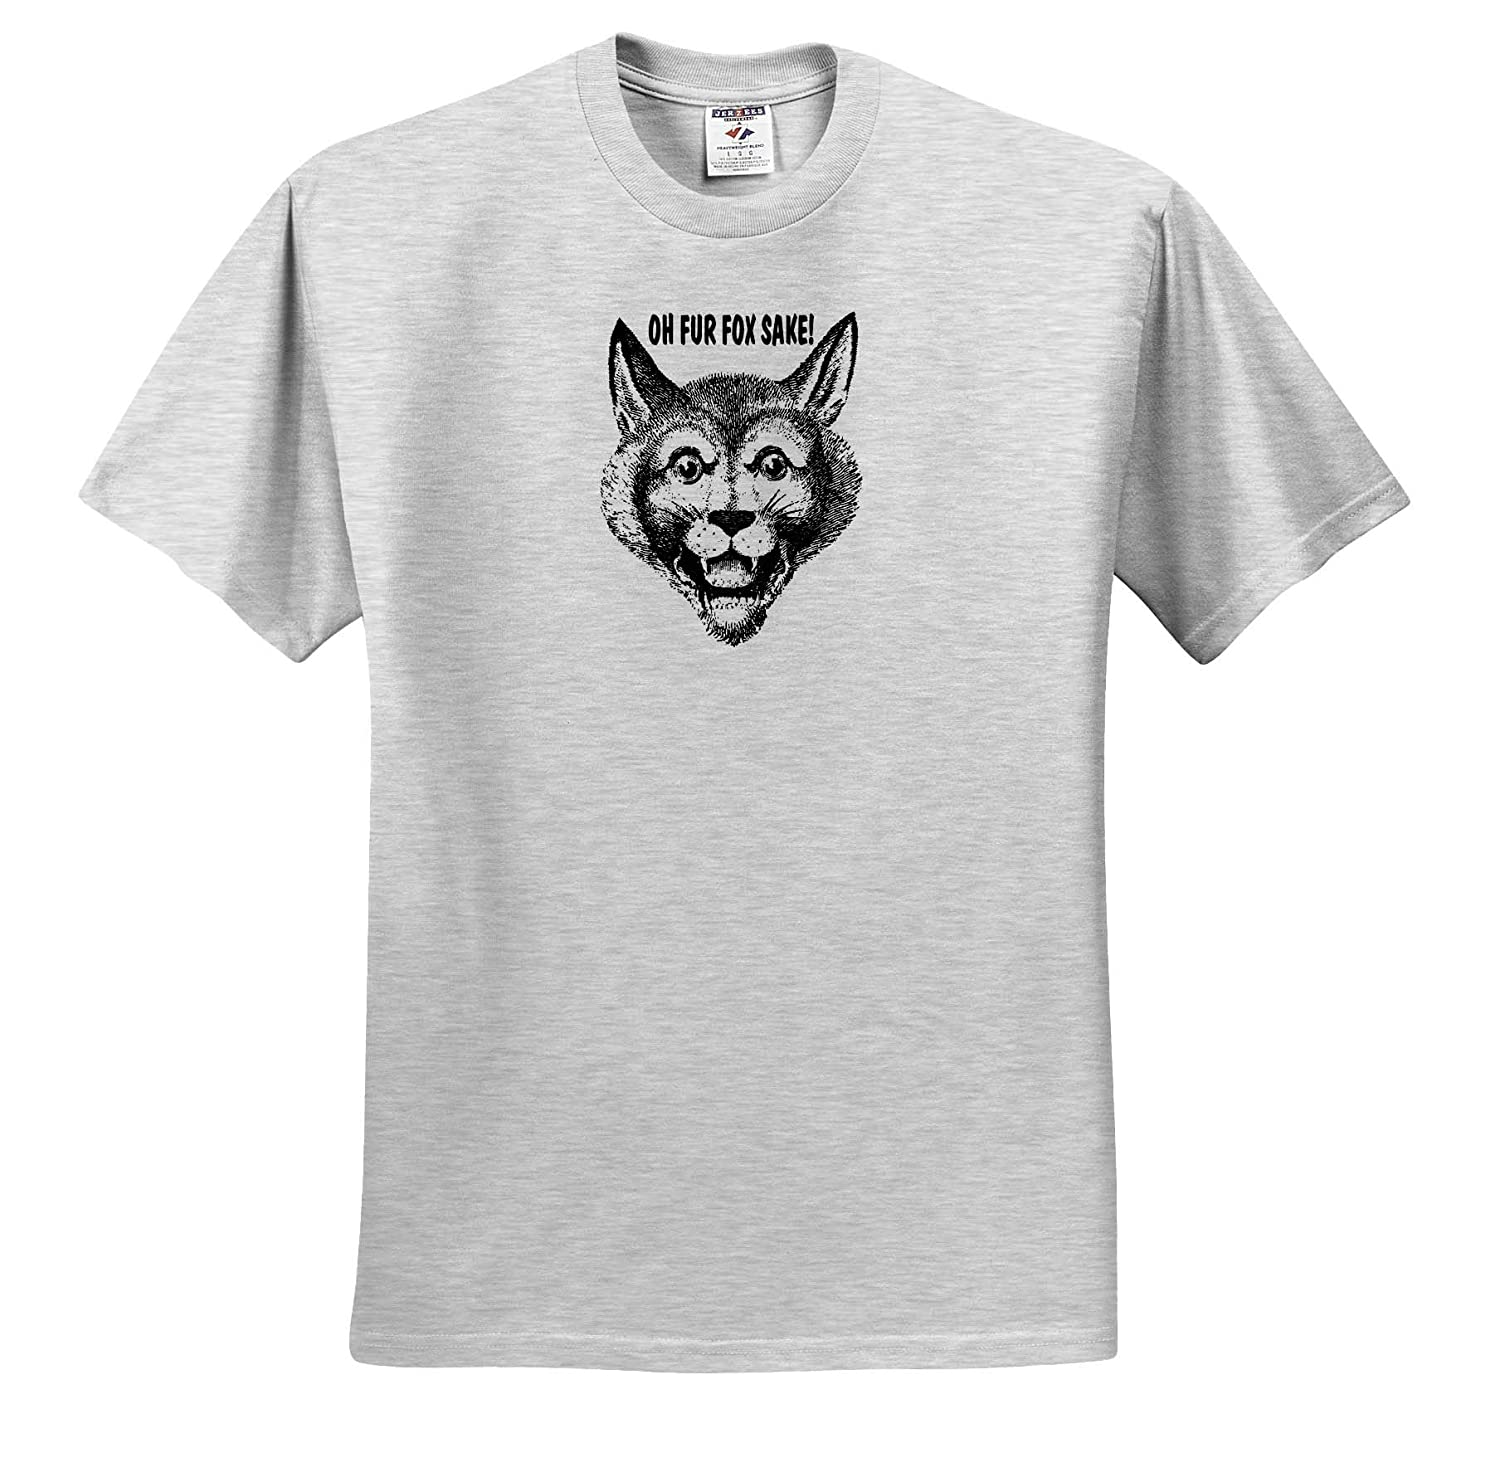 Oh Fur Fox Sake T-Shirts Funny Vintage Fox Image with Text in Black and White 3dRose Russ Billington Designs